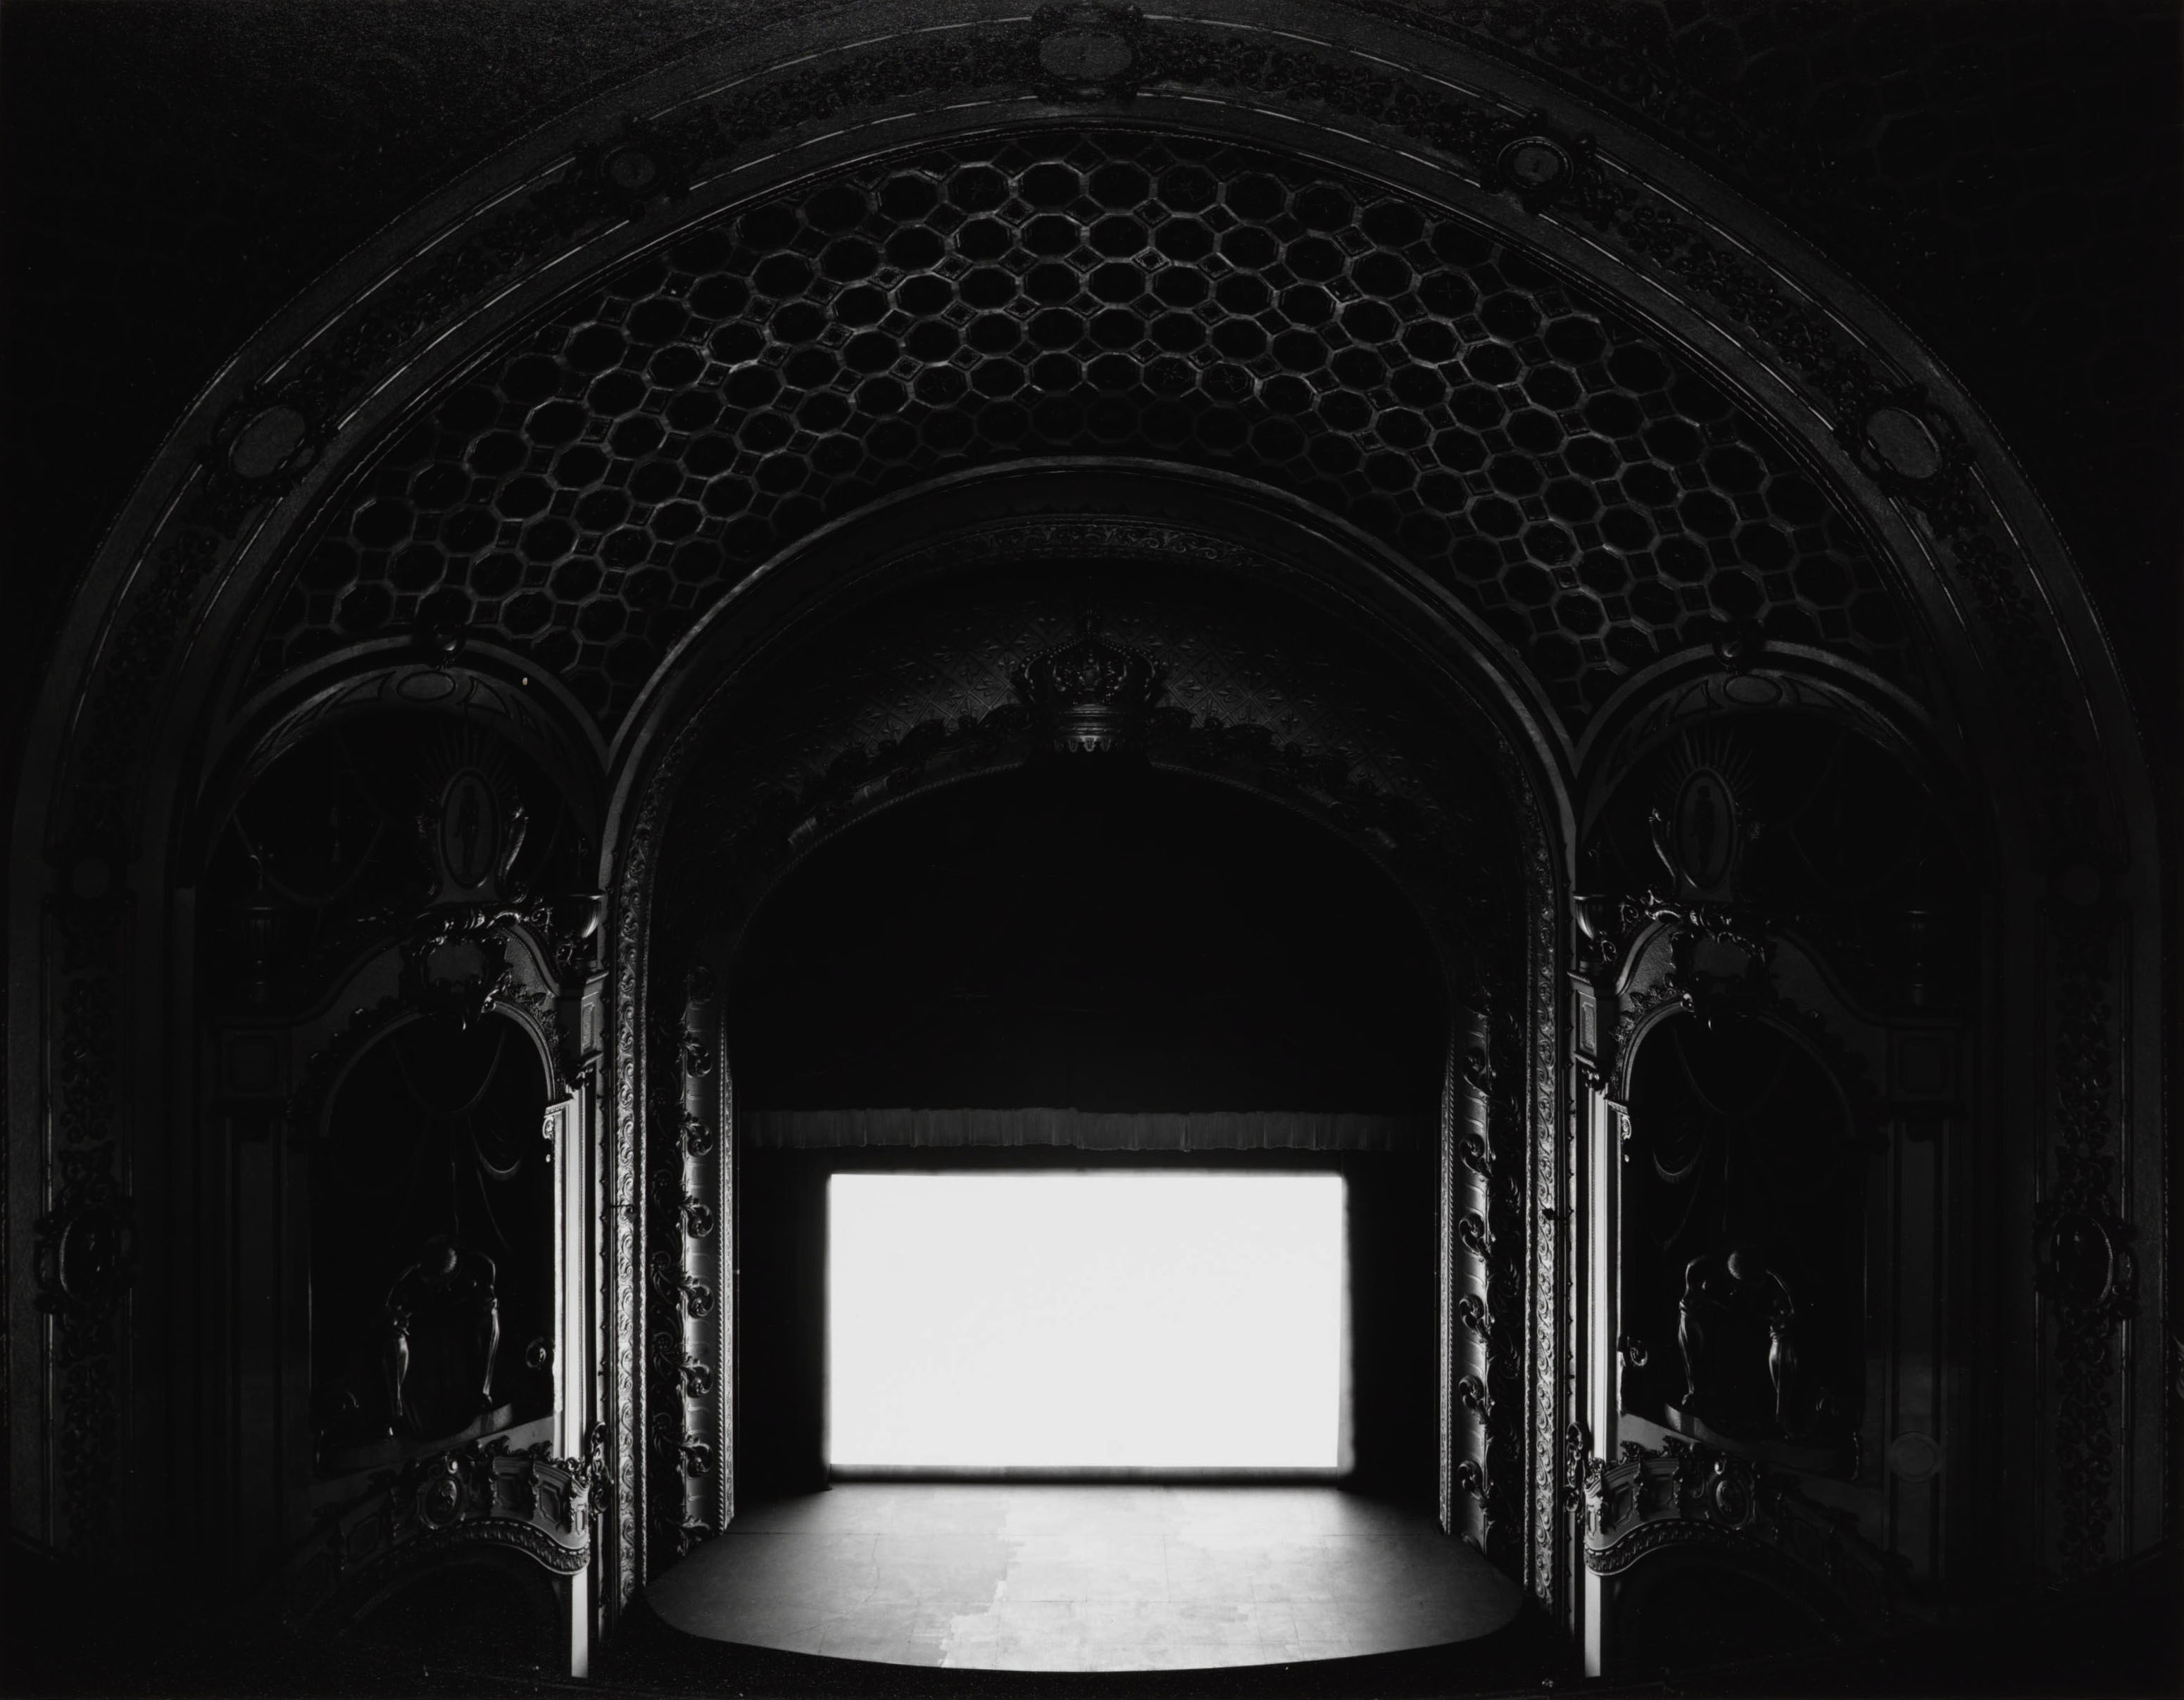 Hiroshi Sugimoto - Theaters - State Theatre, Sydney, 1997